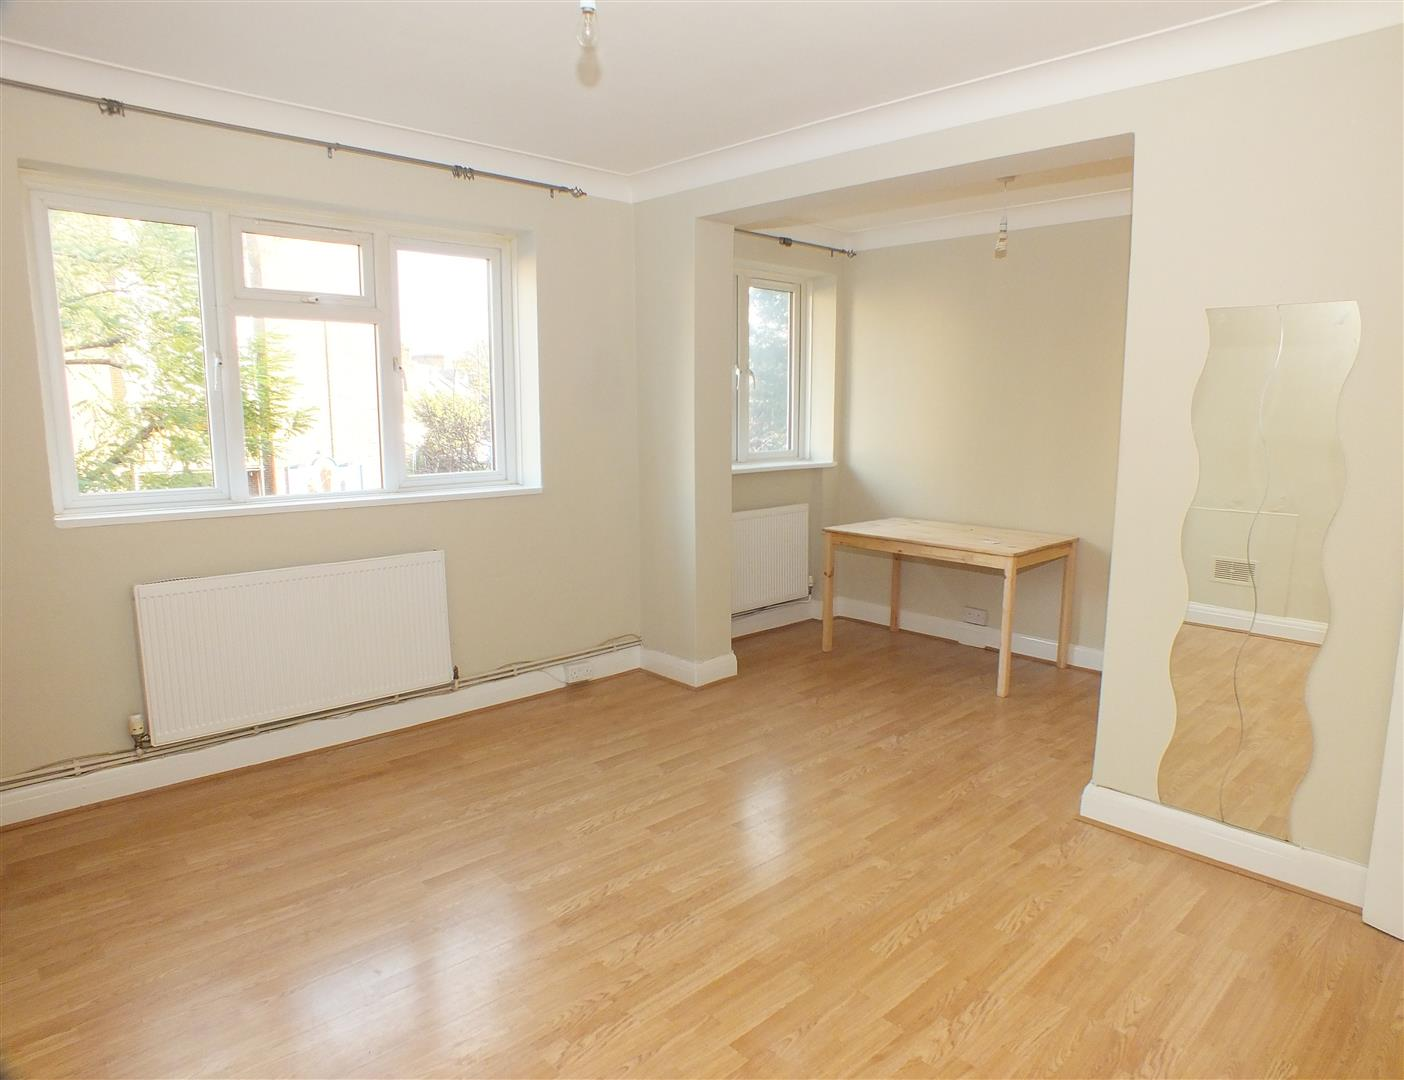 2 Bedrooms Flat for sale in The Elms, Nicoll Road, Harlesden, NW10 9AA